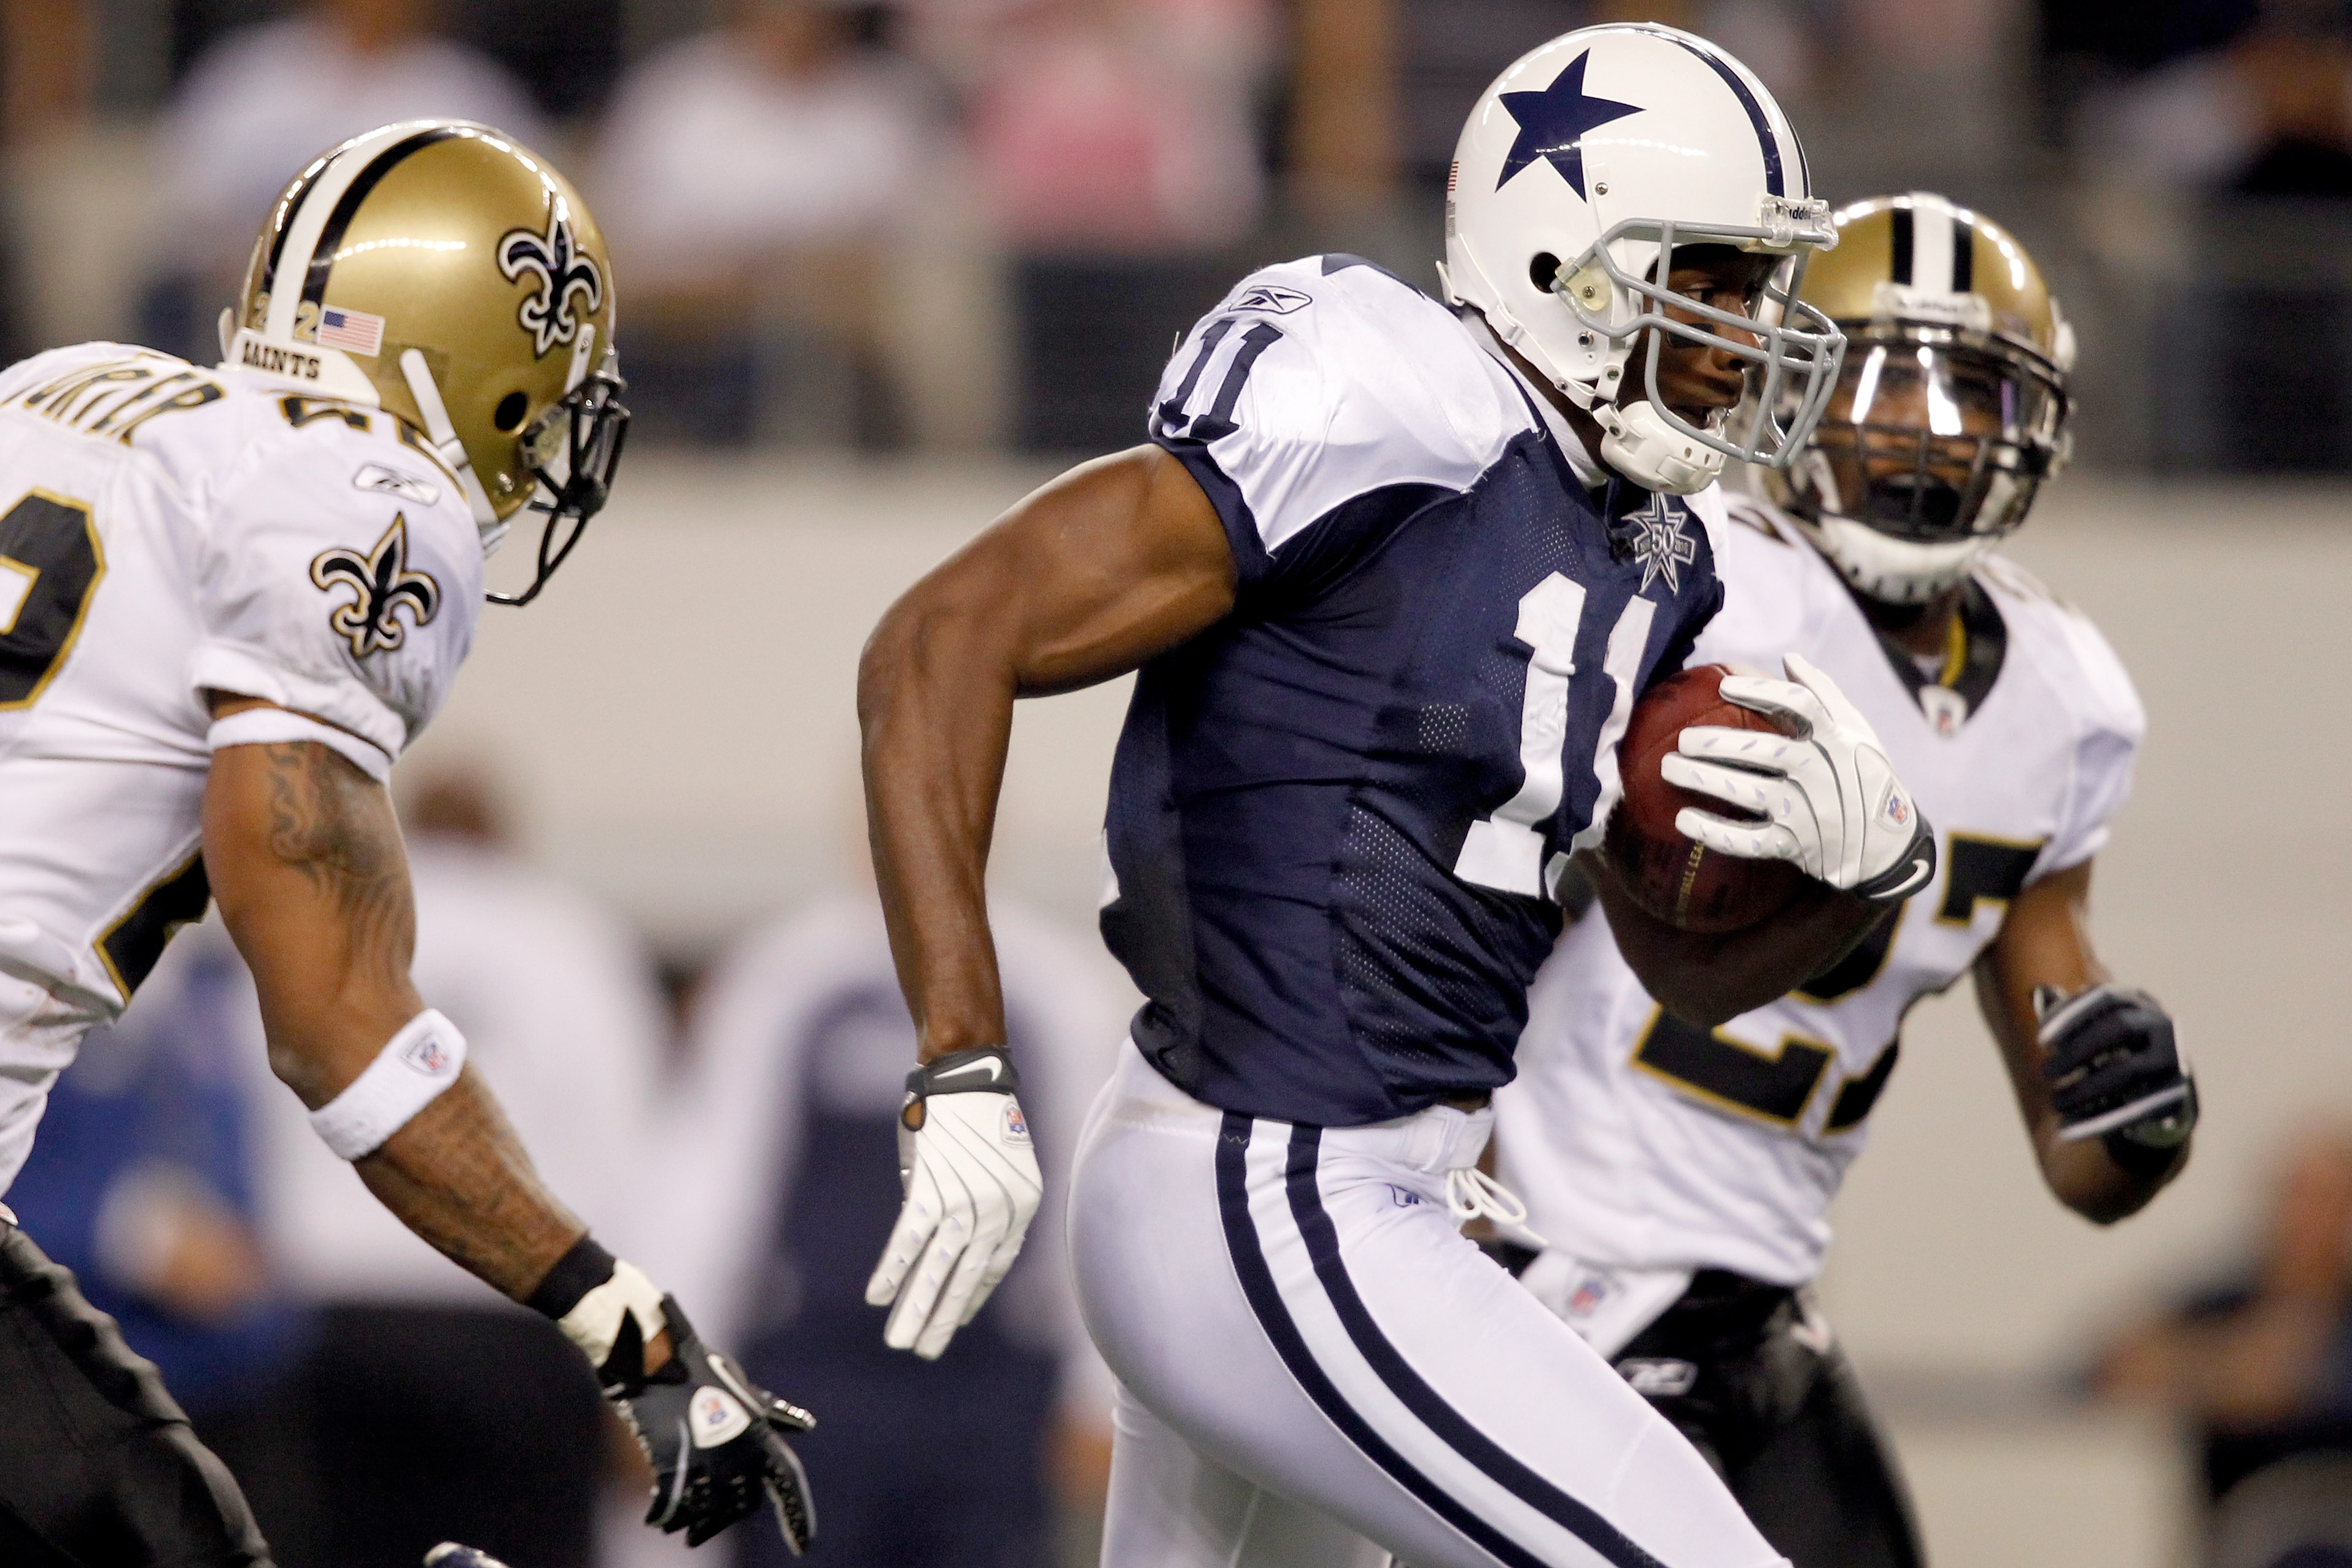 ARLINGTON, TX - NOVEMBER 25: Roy Williams #11 of the Dallas Cowboys carries the ball after making a reception  while being pursued by Malcolm Jenkins #27  of the New Orleans Saints at Cowboys Stadium on November 25, 2010 in Arlington, Texas. Jenkins would